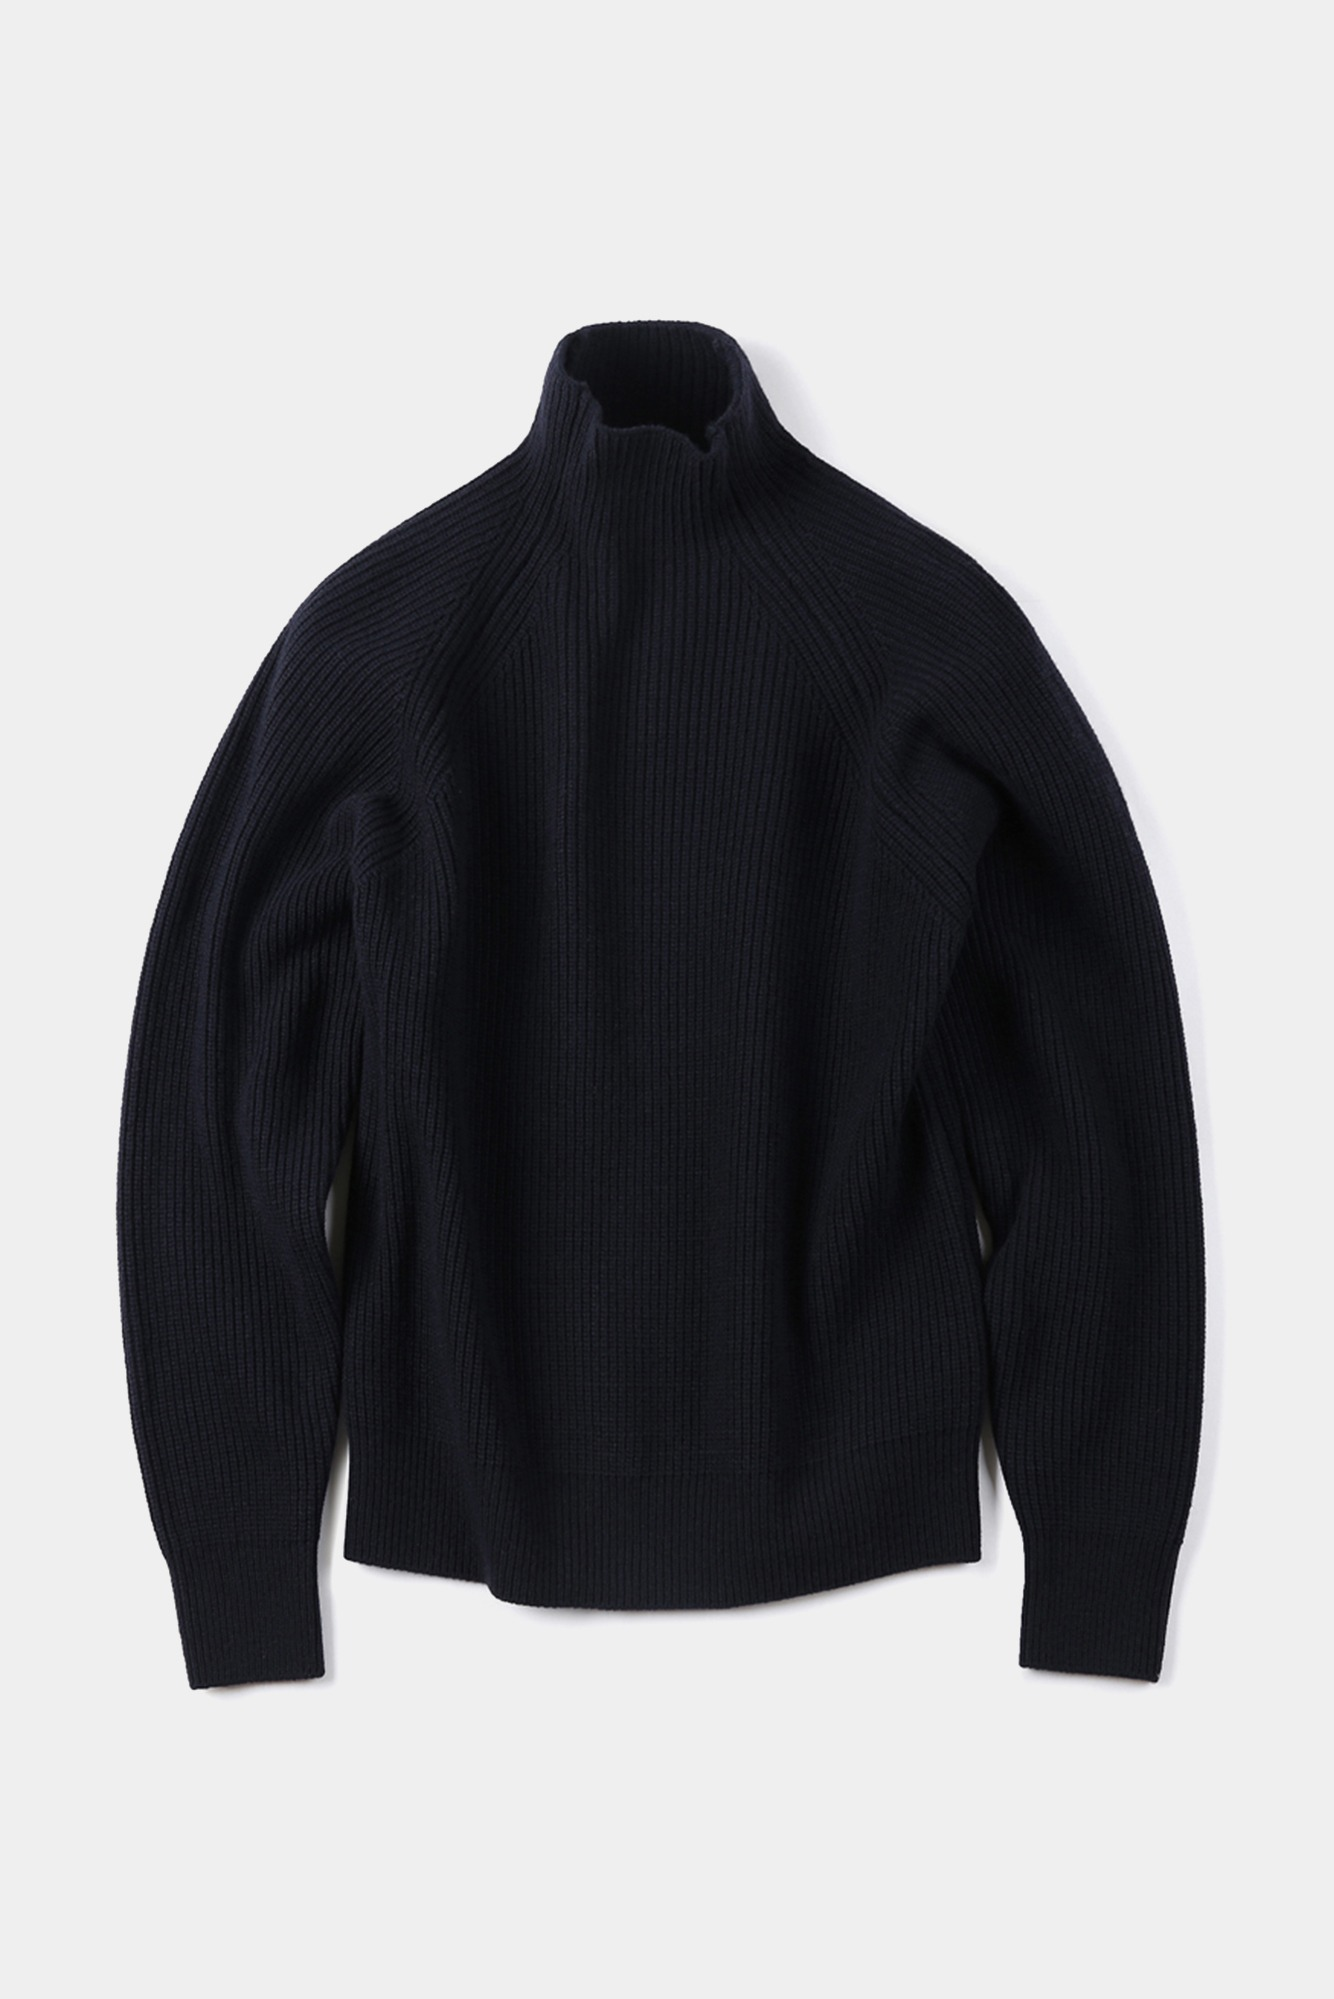 "SHIRTER Super Fine Lambs Wool High Neck Knit ""Dark Navy"""